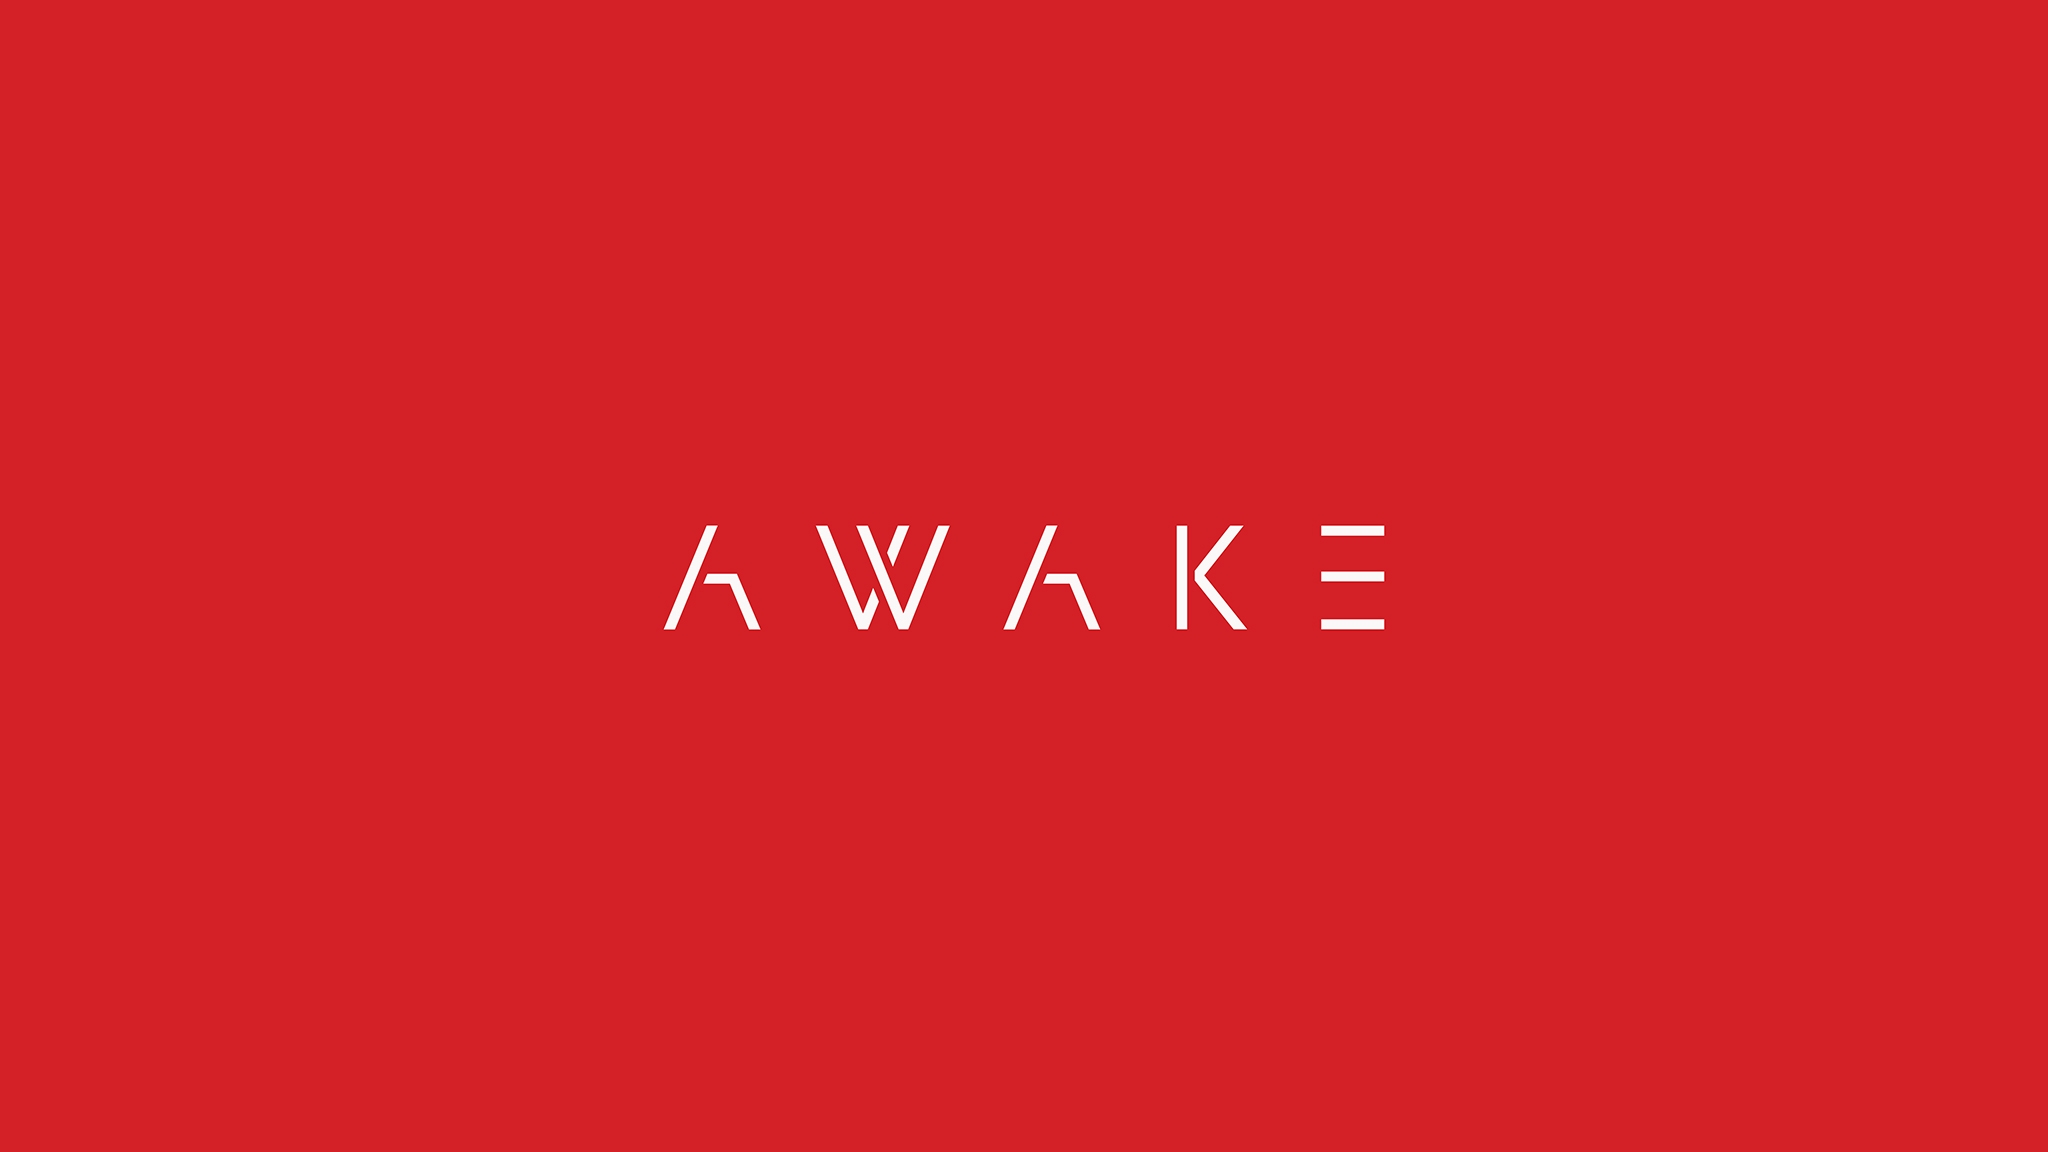 Awake Graphics Boutique Art Solutions (@awakeboutiqueart) Cover Image